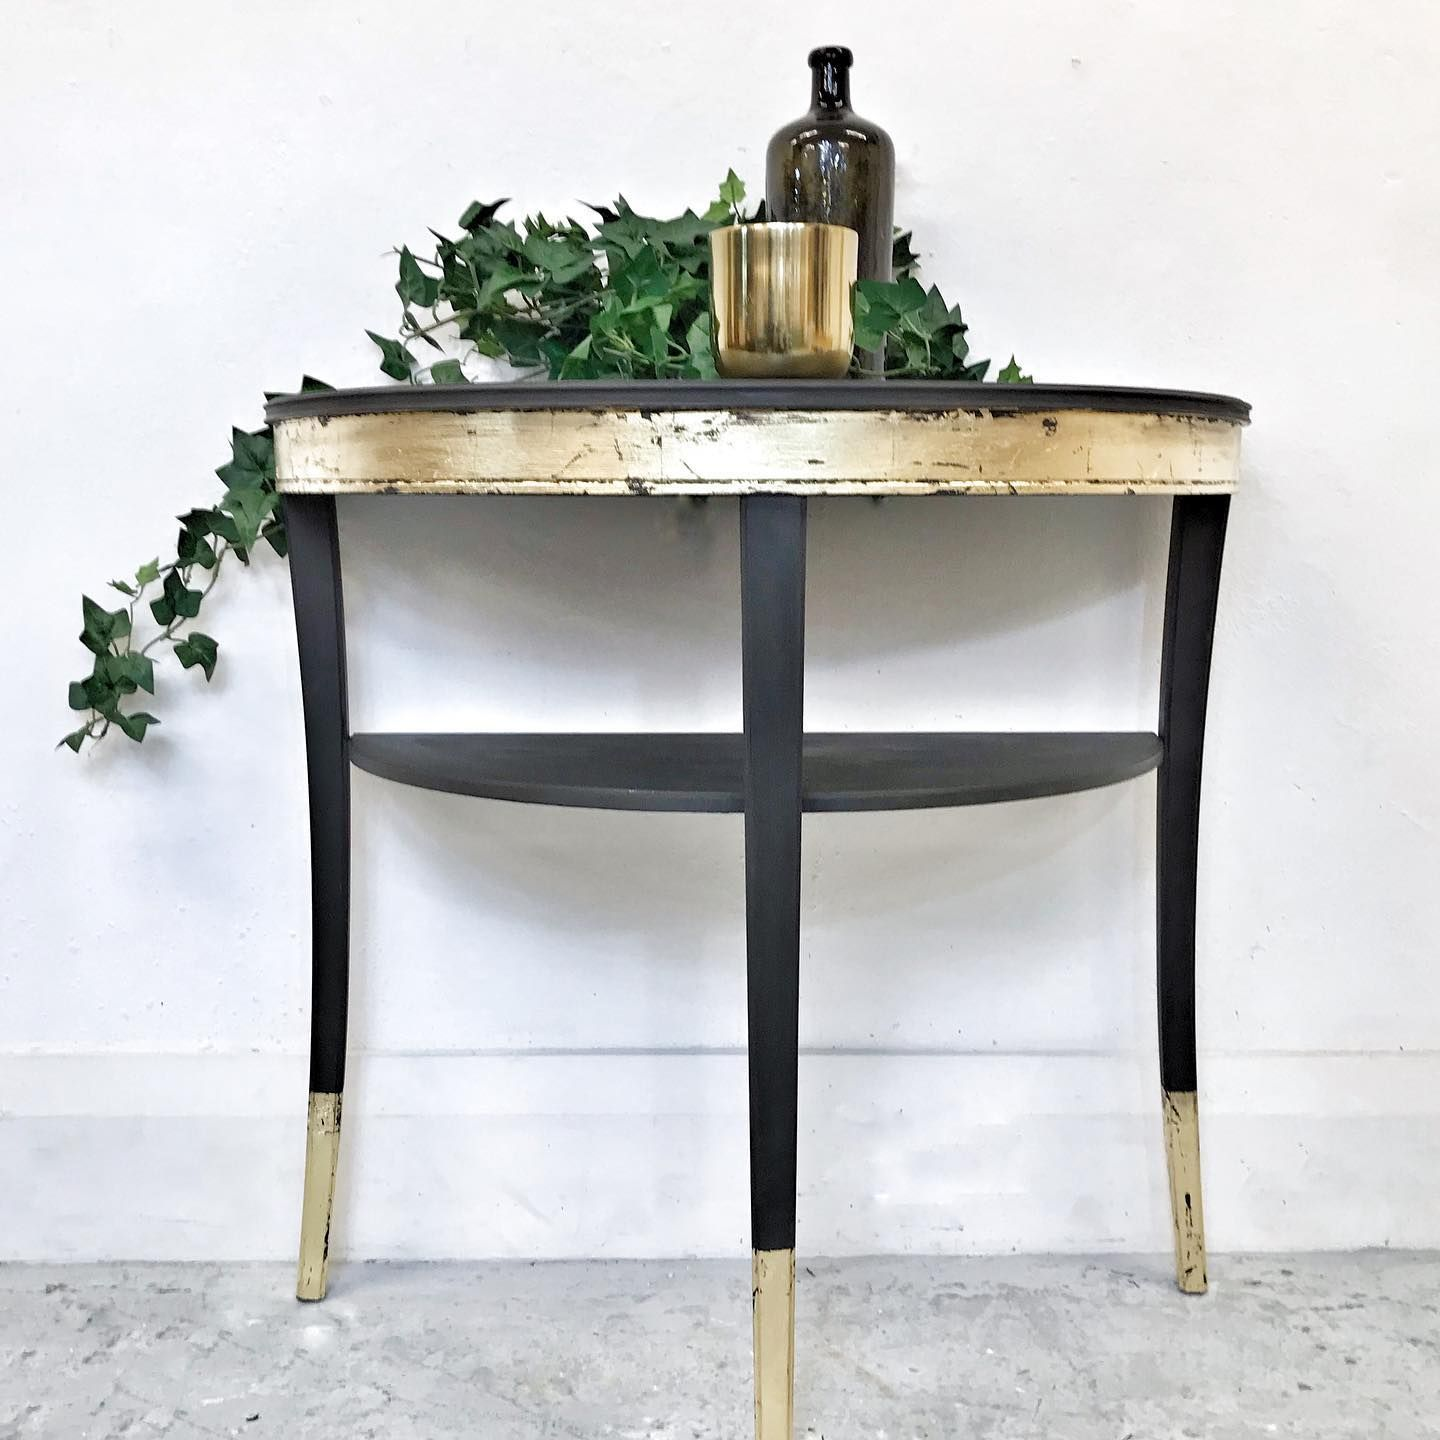 Legate Furniture Hand Painted Half Moon Console Table With Shelf In Graphite And Gold Leaf Numonday In 2020 Half Moon Console Table Console Table Decorating Decor